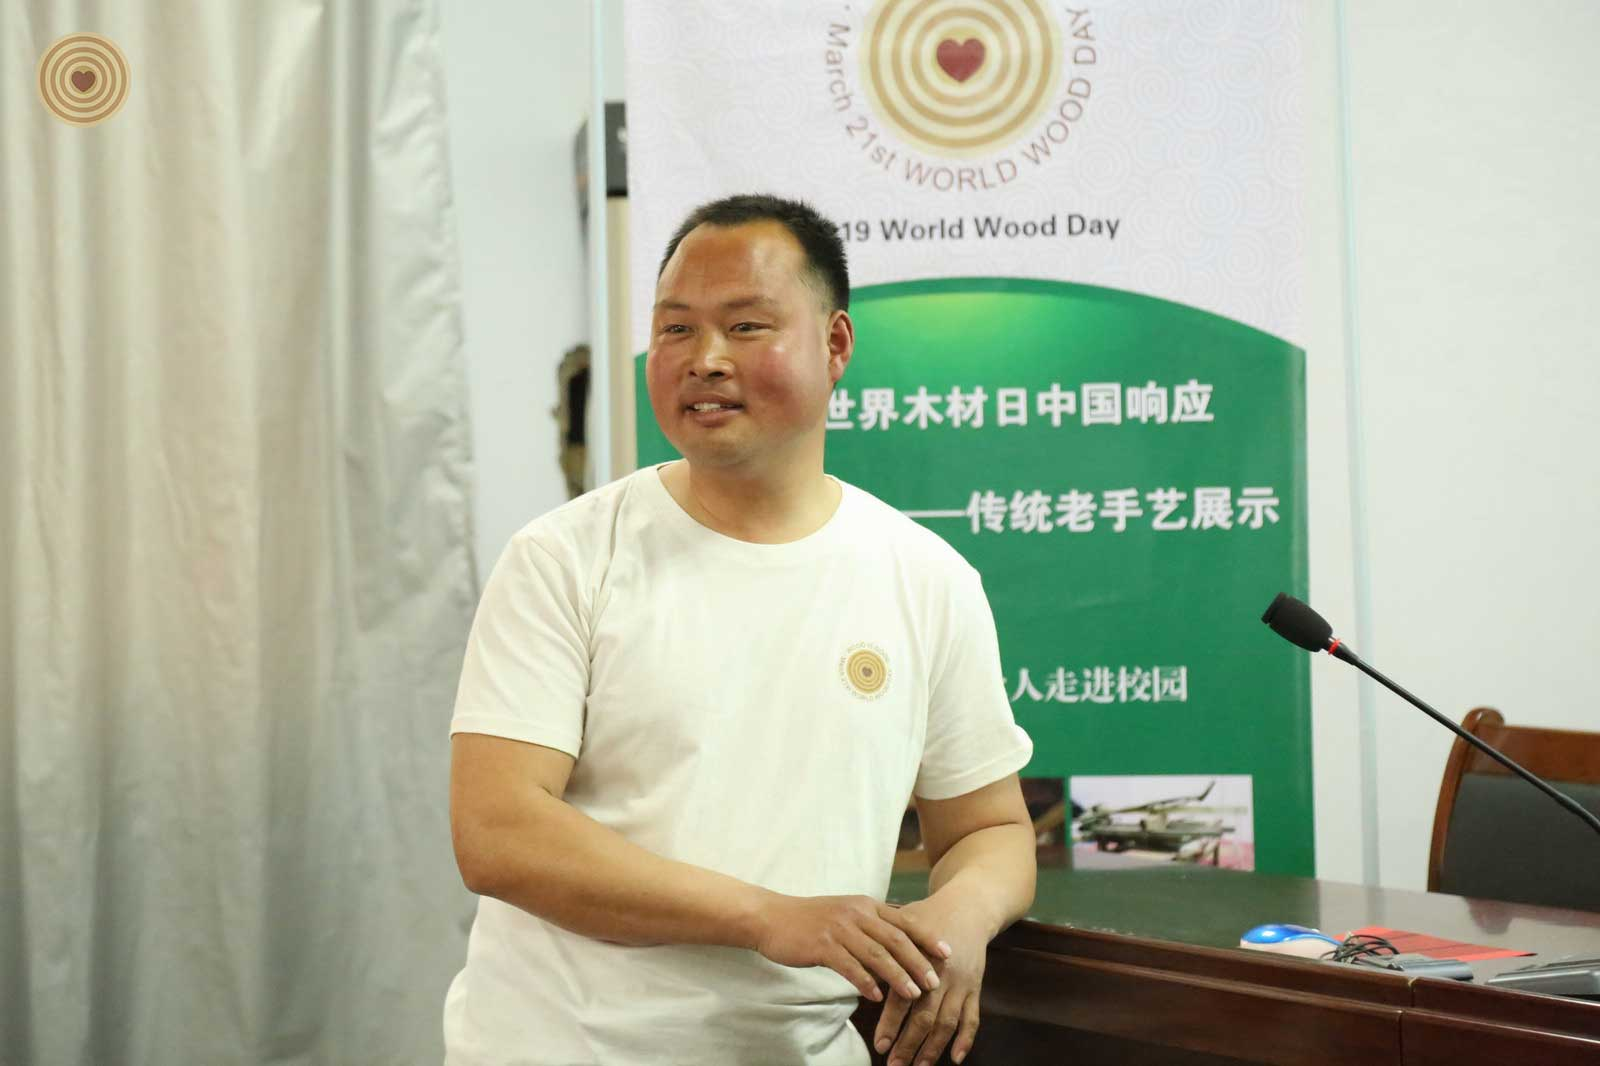 2019 WWD, Regional Event, China, Hebei